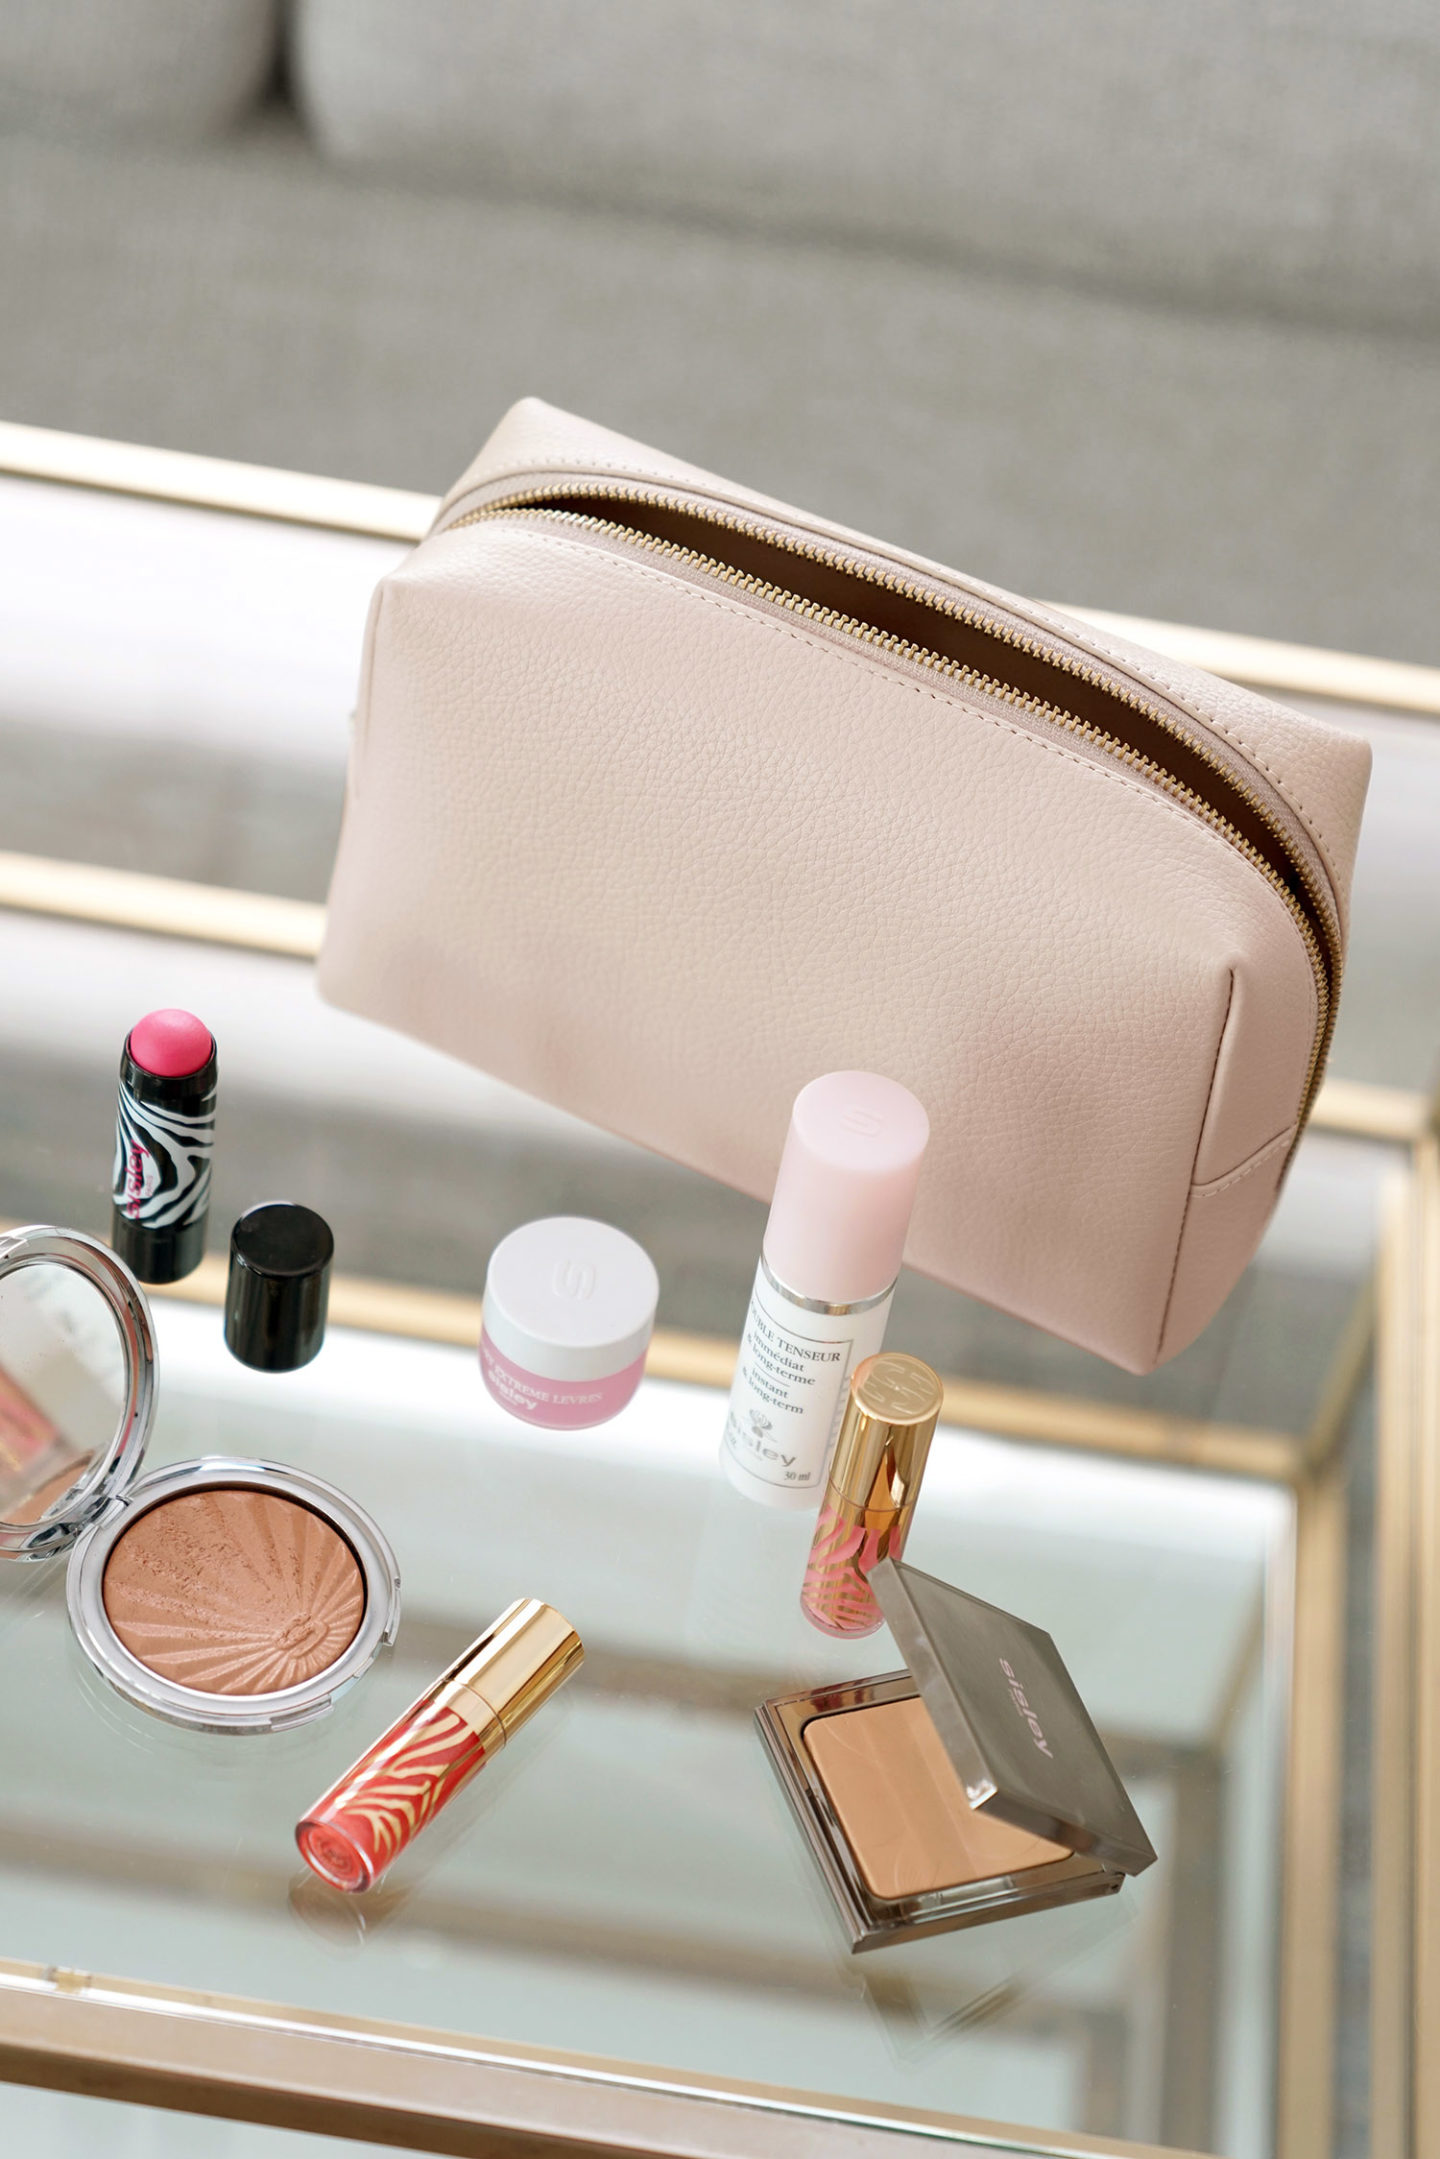 Cuyana Vanity Case Blush |  Le Look Book Beauté